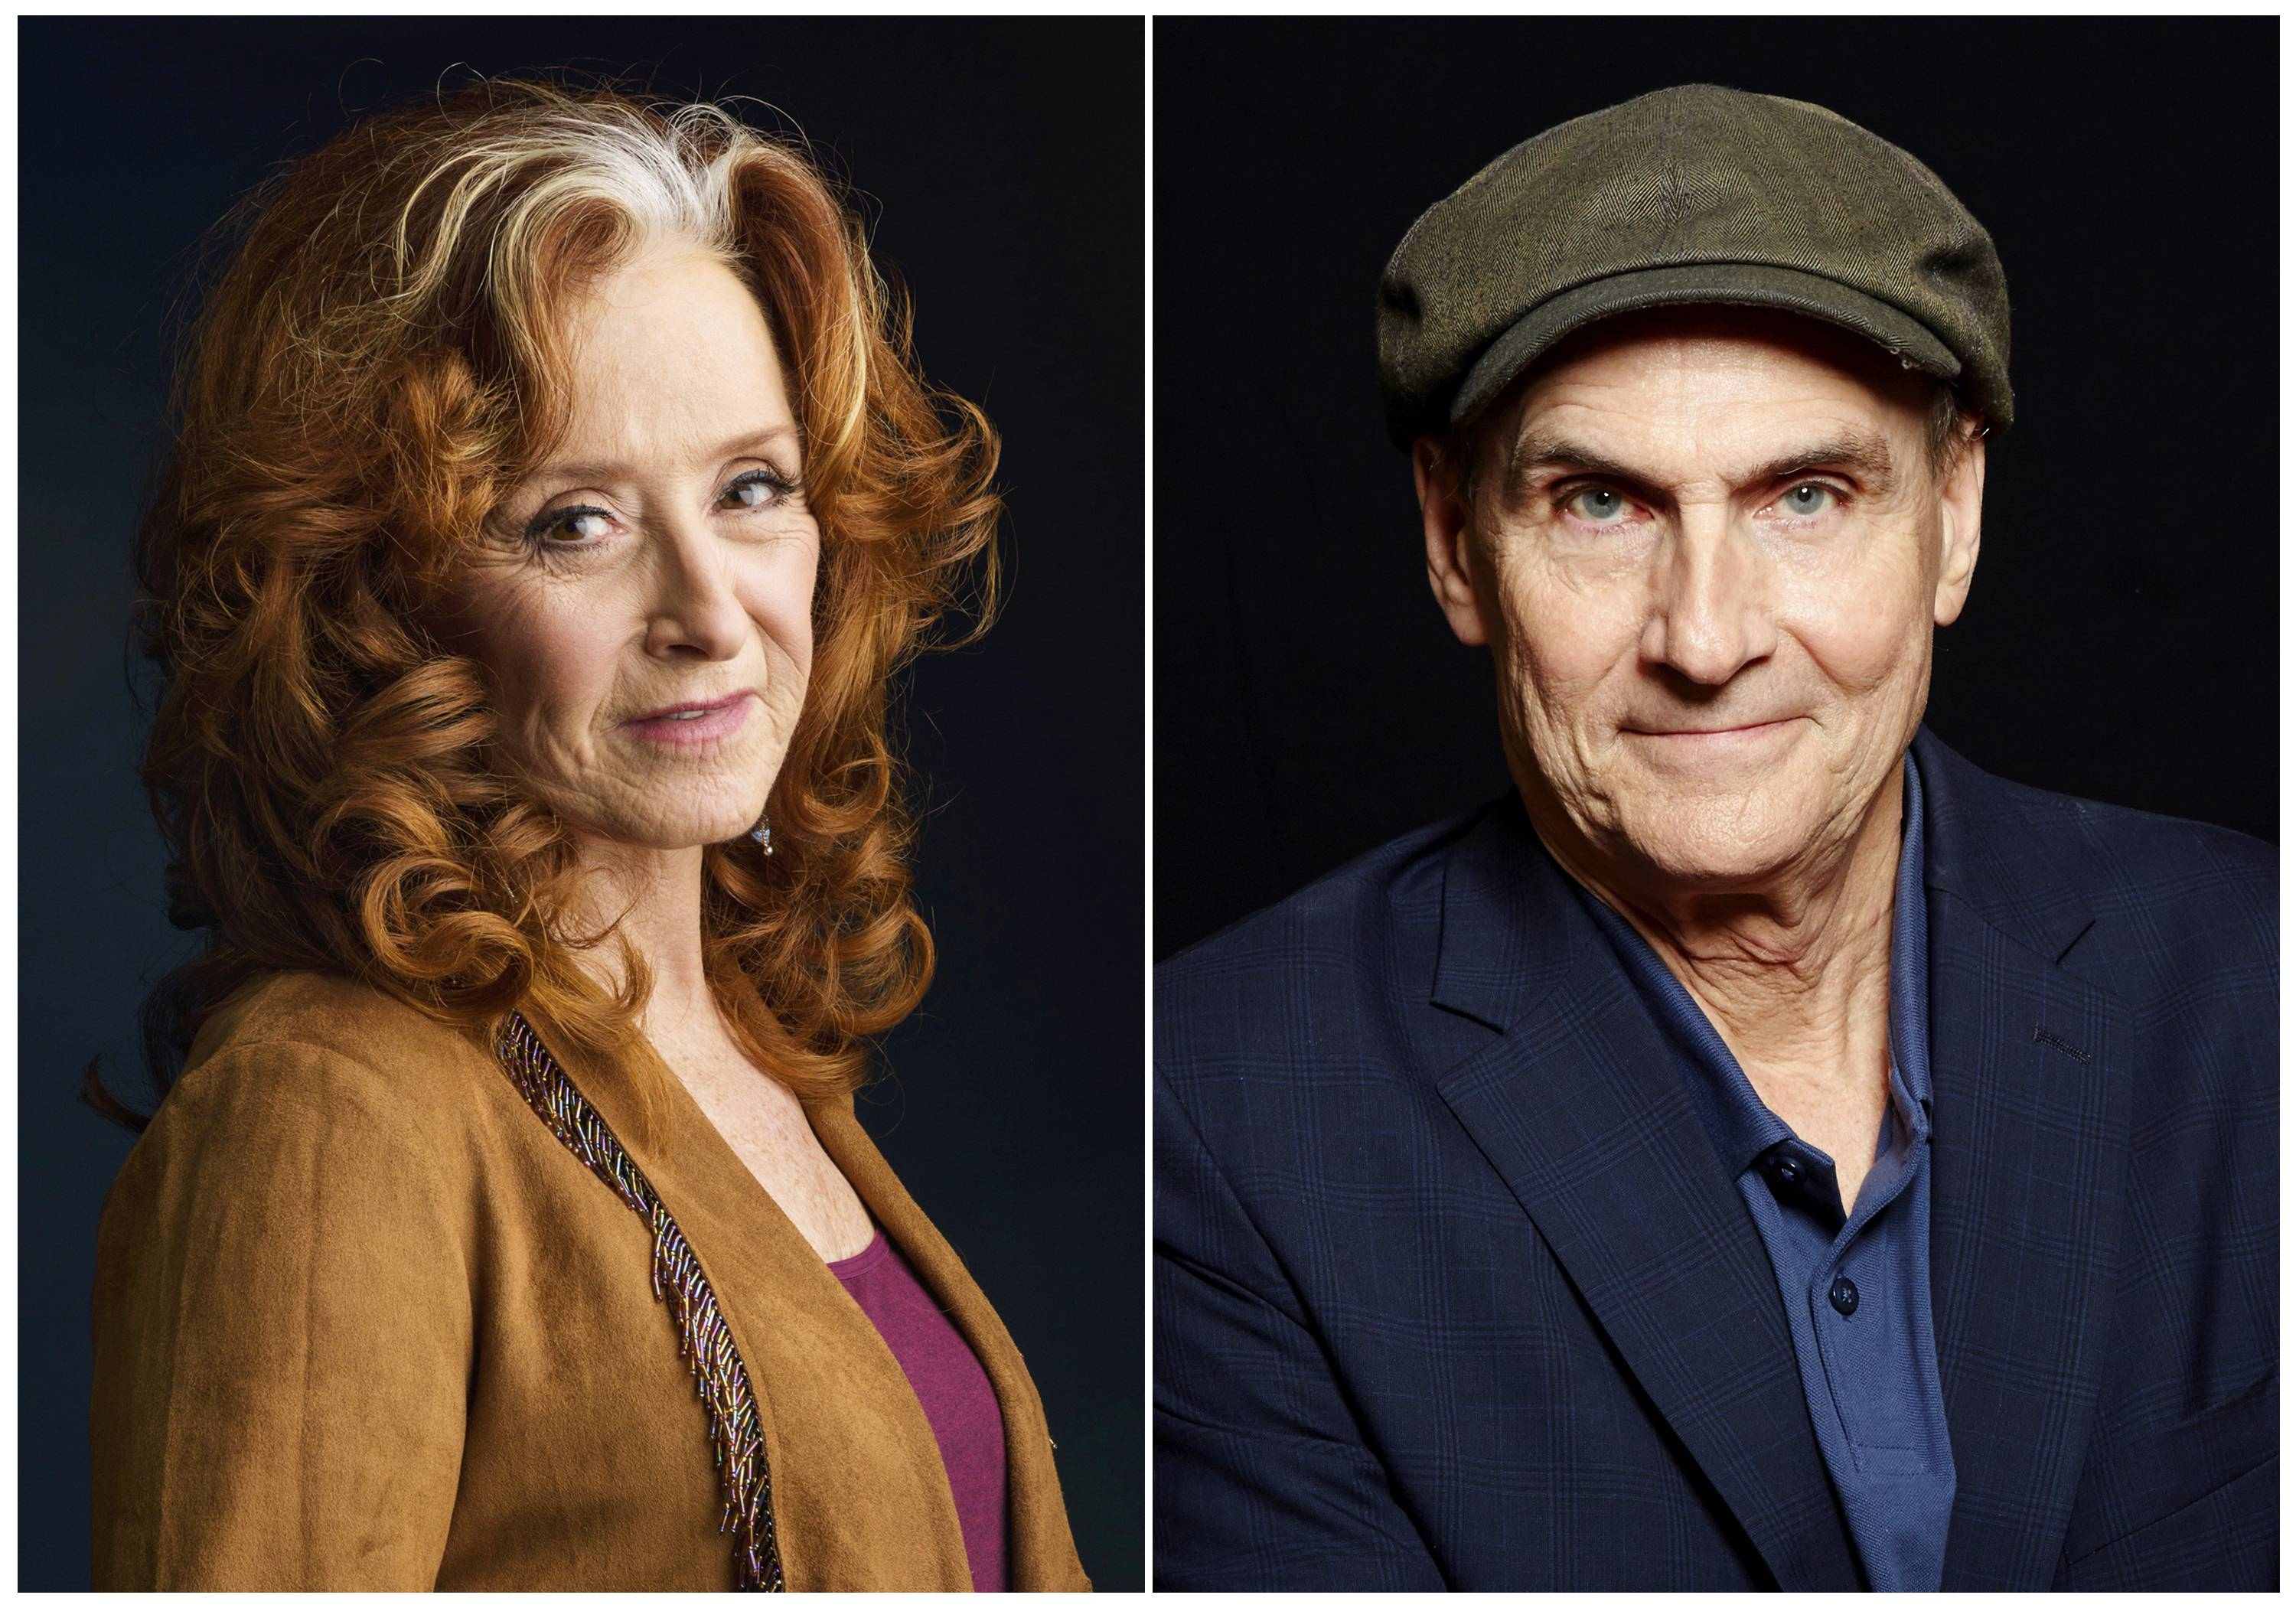 Bonnie Raitt, left, and James Taylor team up for a concert at Chicago's Wrigley Field on Monday, July 17.